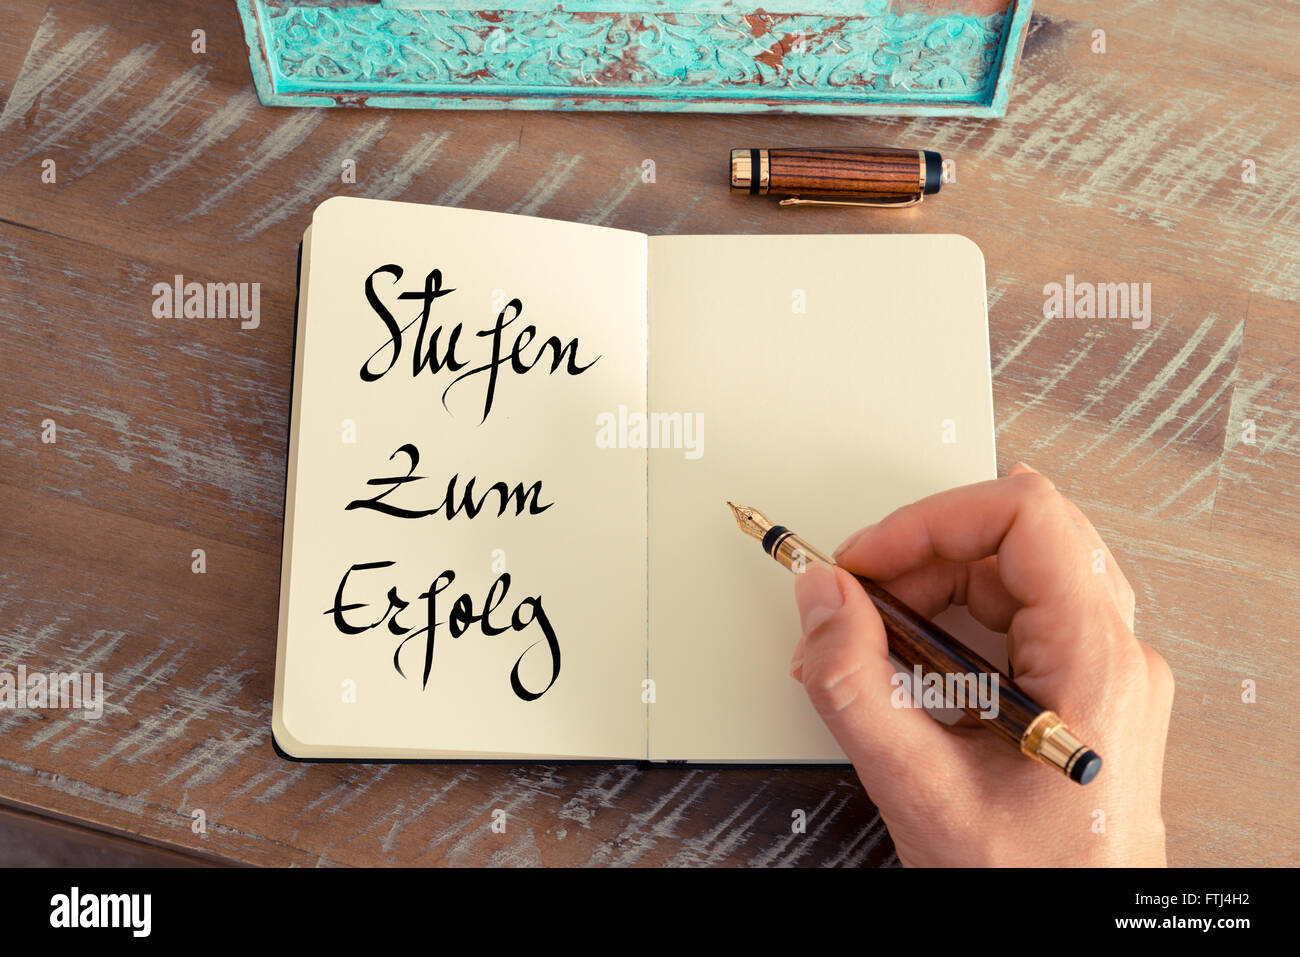 Handwritten text in German 'Stufen Zum Erfolg'  - translation : Steps To Success as business concept image - Stock Image